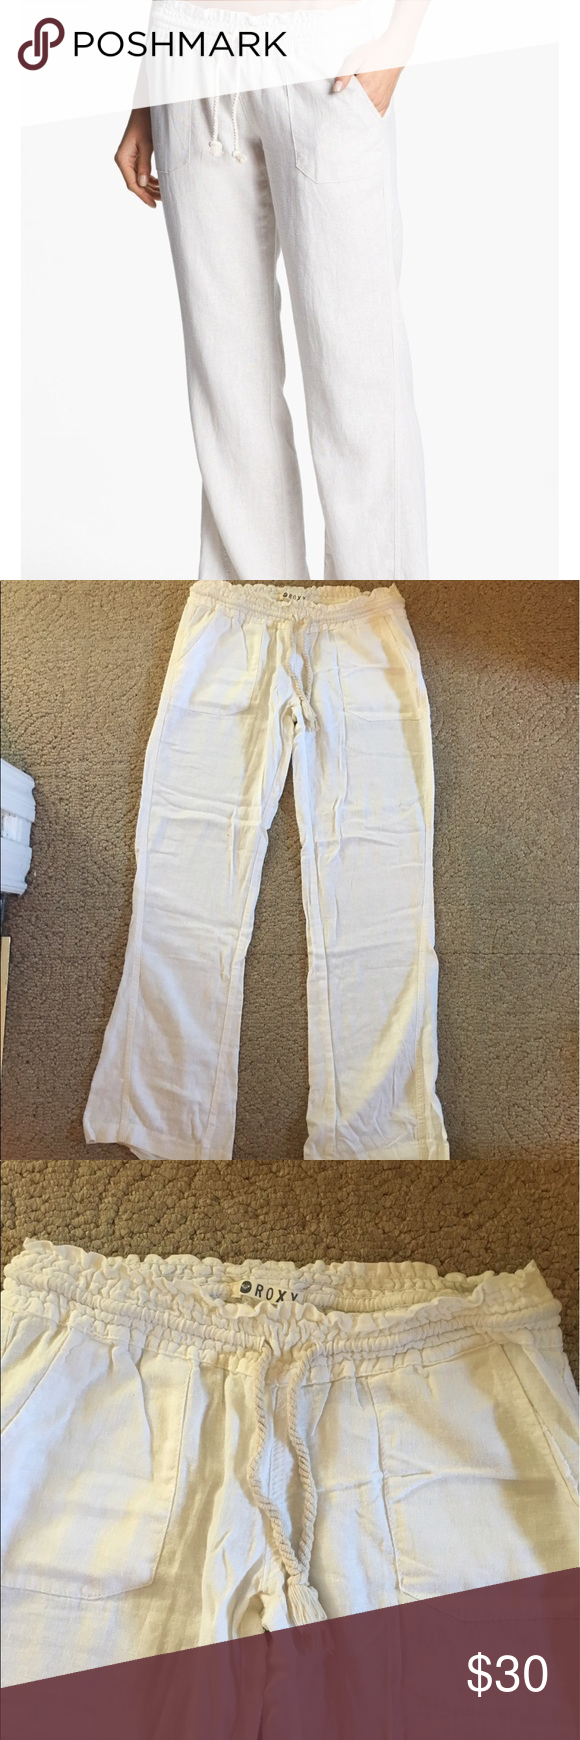 Roxy Oceanside Beach Pants (Stone) Super cute flowy pants! Very comfortable and very breathable; perfect for the summer! Worn a few times but in great condition! Roxy Pants Boot Cut & Flare